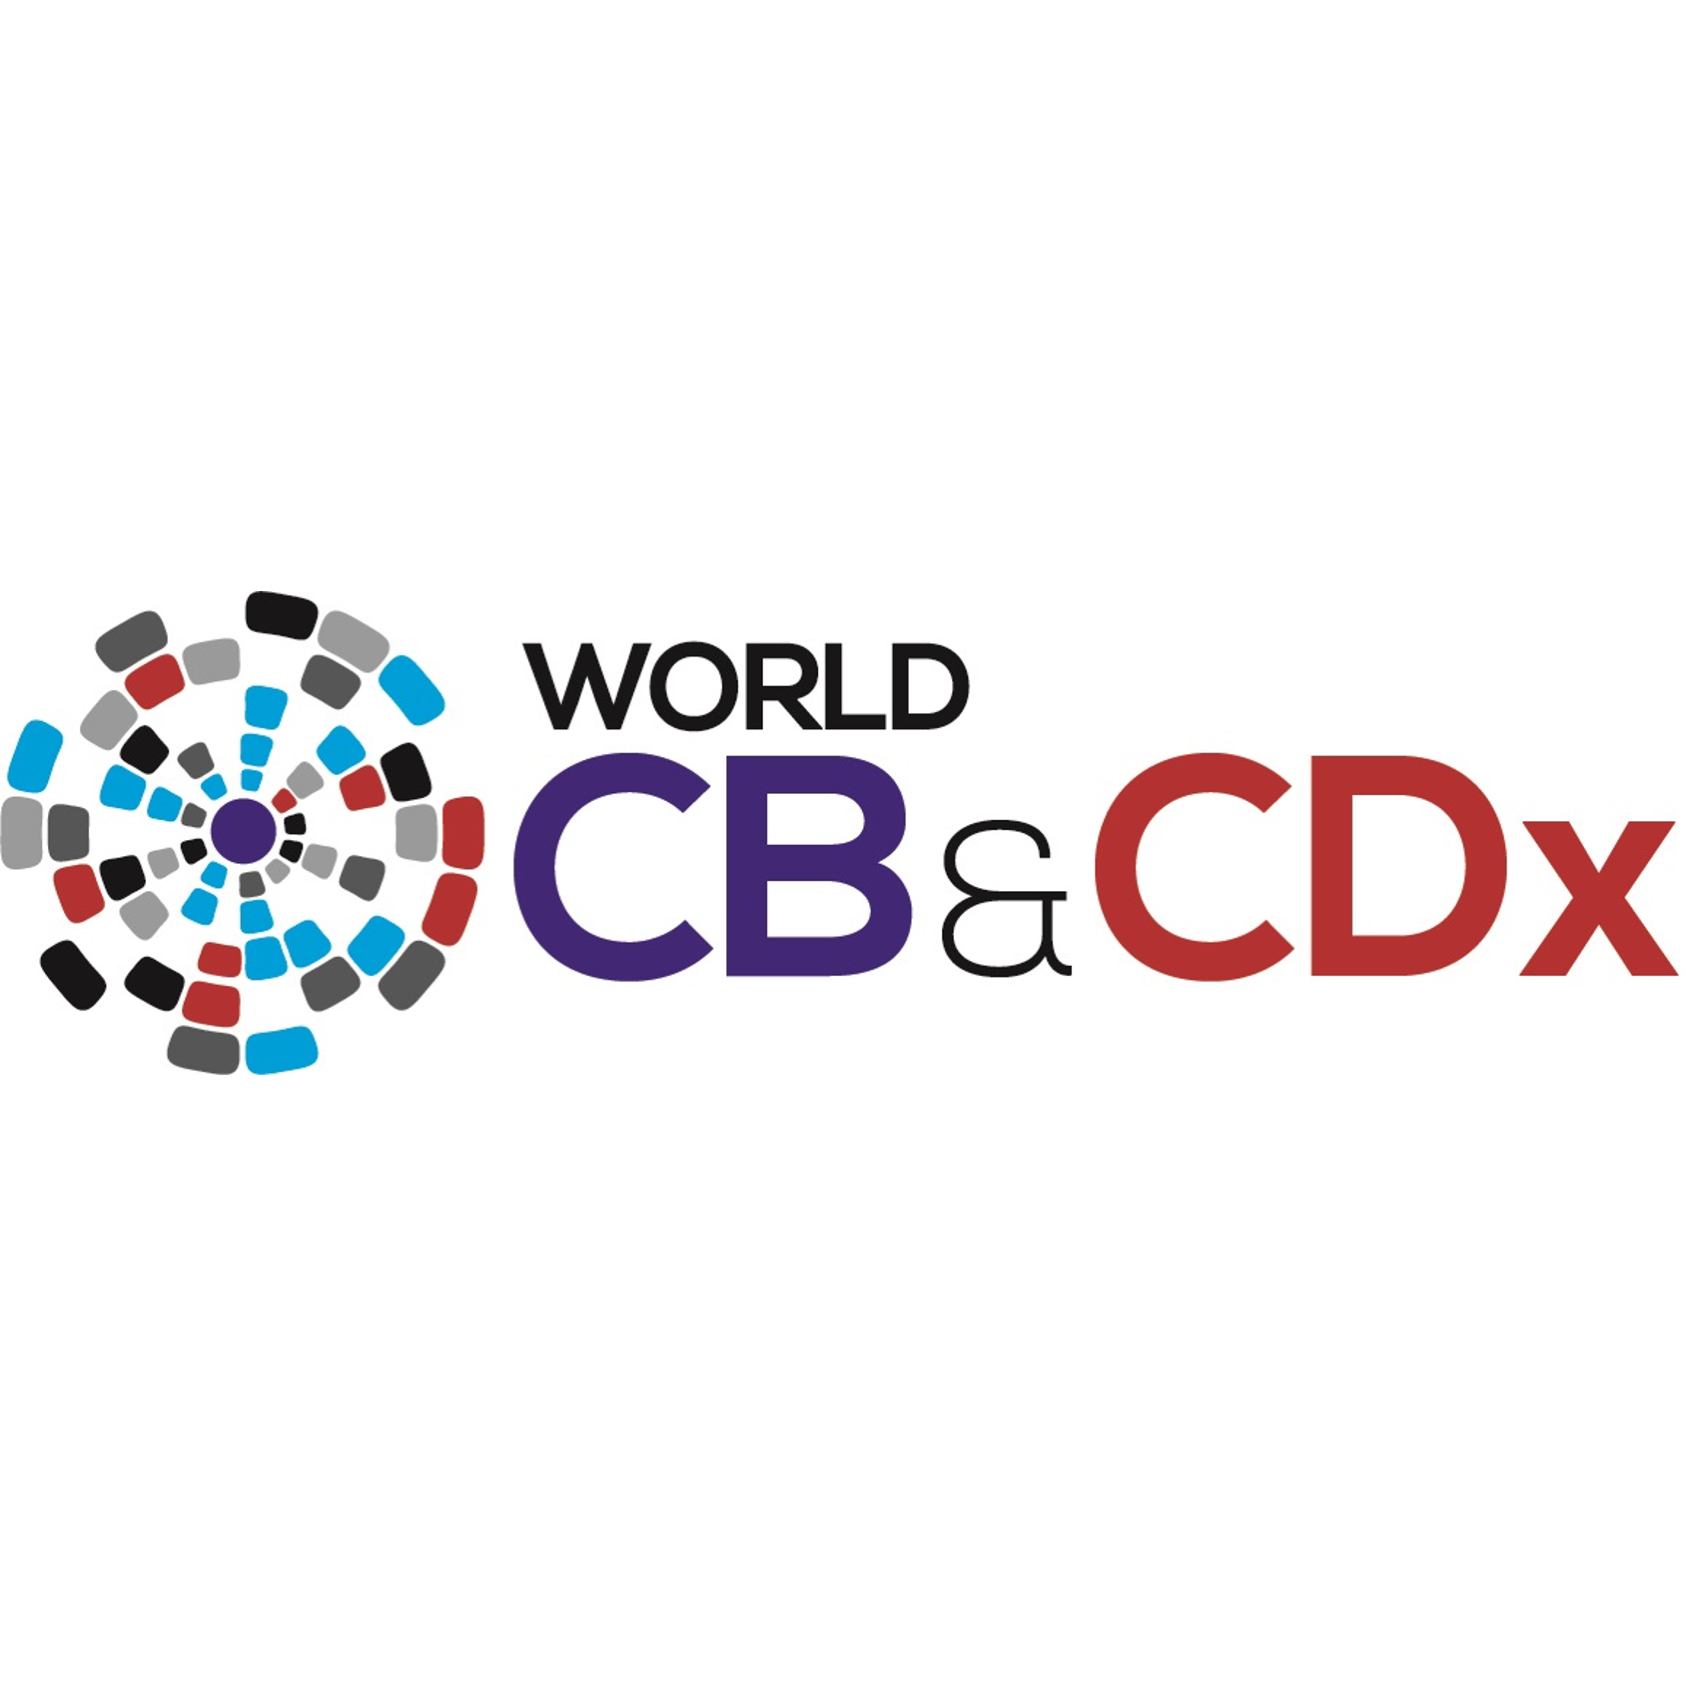 World CB & CDx